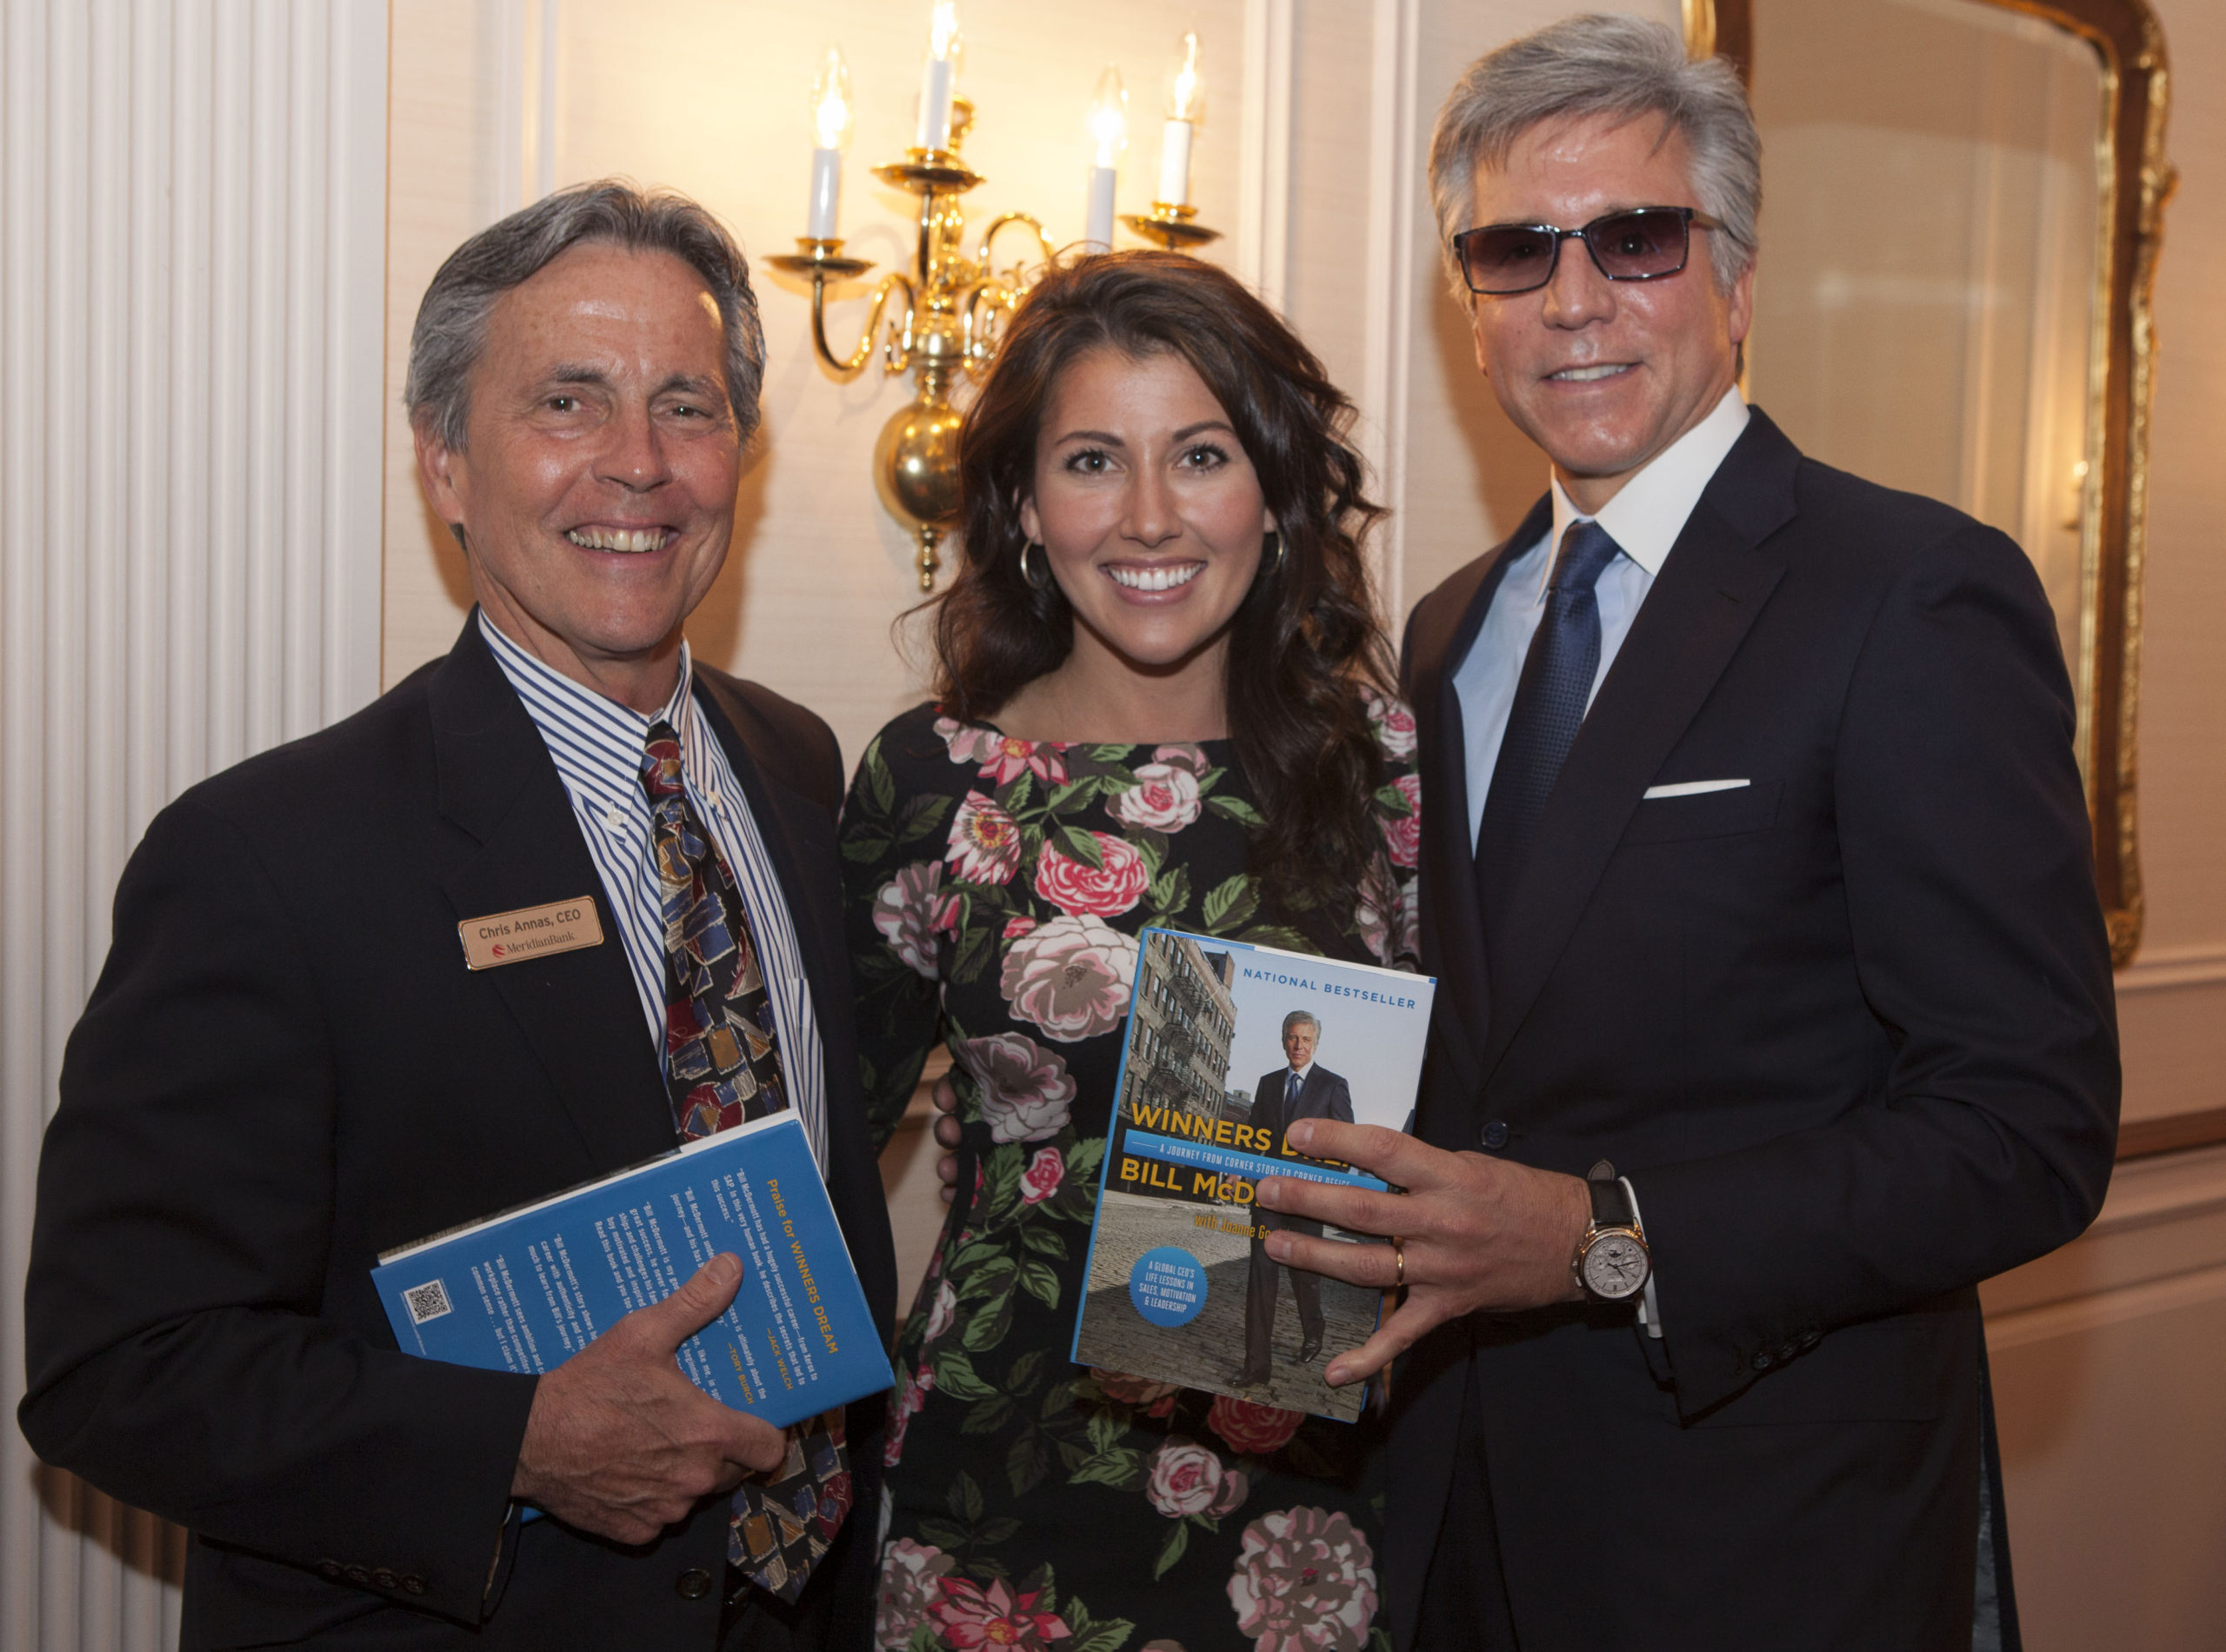 Meridian Bank Hosts an Inspirational Bill McDermott for Business-Owning Clients at Desmond Hotel